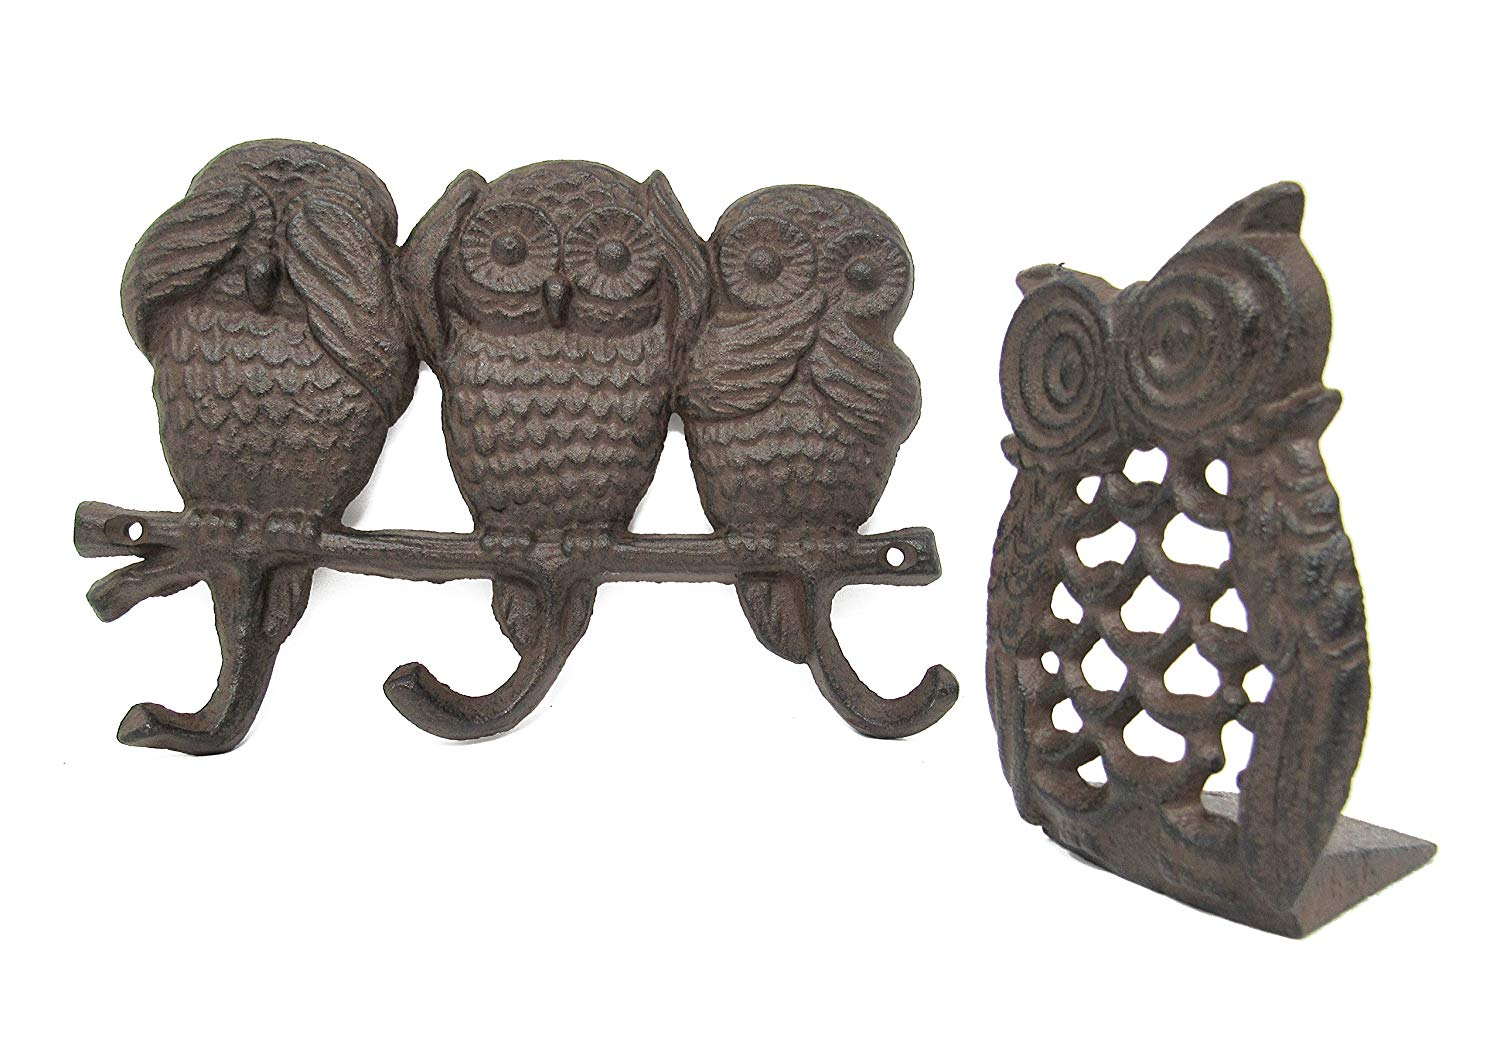 3 Owl Key Hooks See No Evil, Speak No Evil, Hear No Evil & Owl Door Stopper Cast Iron w/Screws, Shabby Chic Vintage Wall Mounted, Holds Coats, Bags, Hats, Towels, Scarf's- by Ashes to Beauty